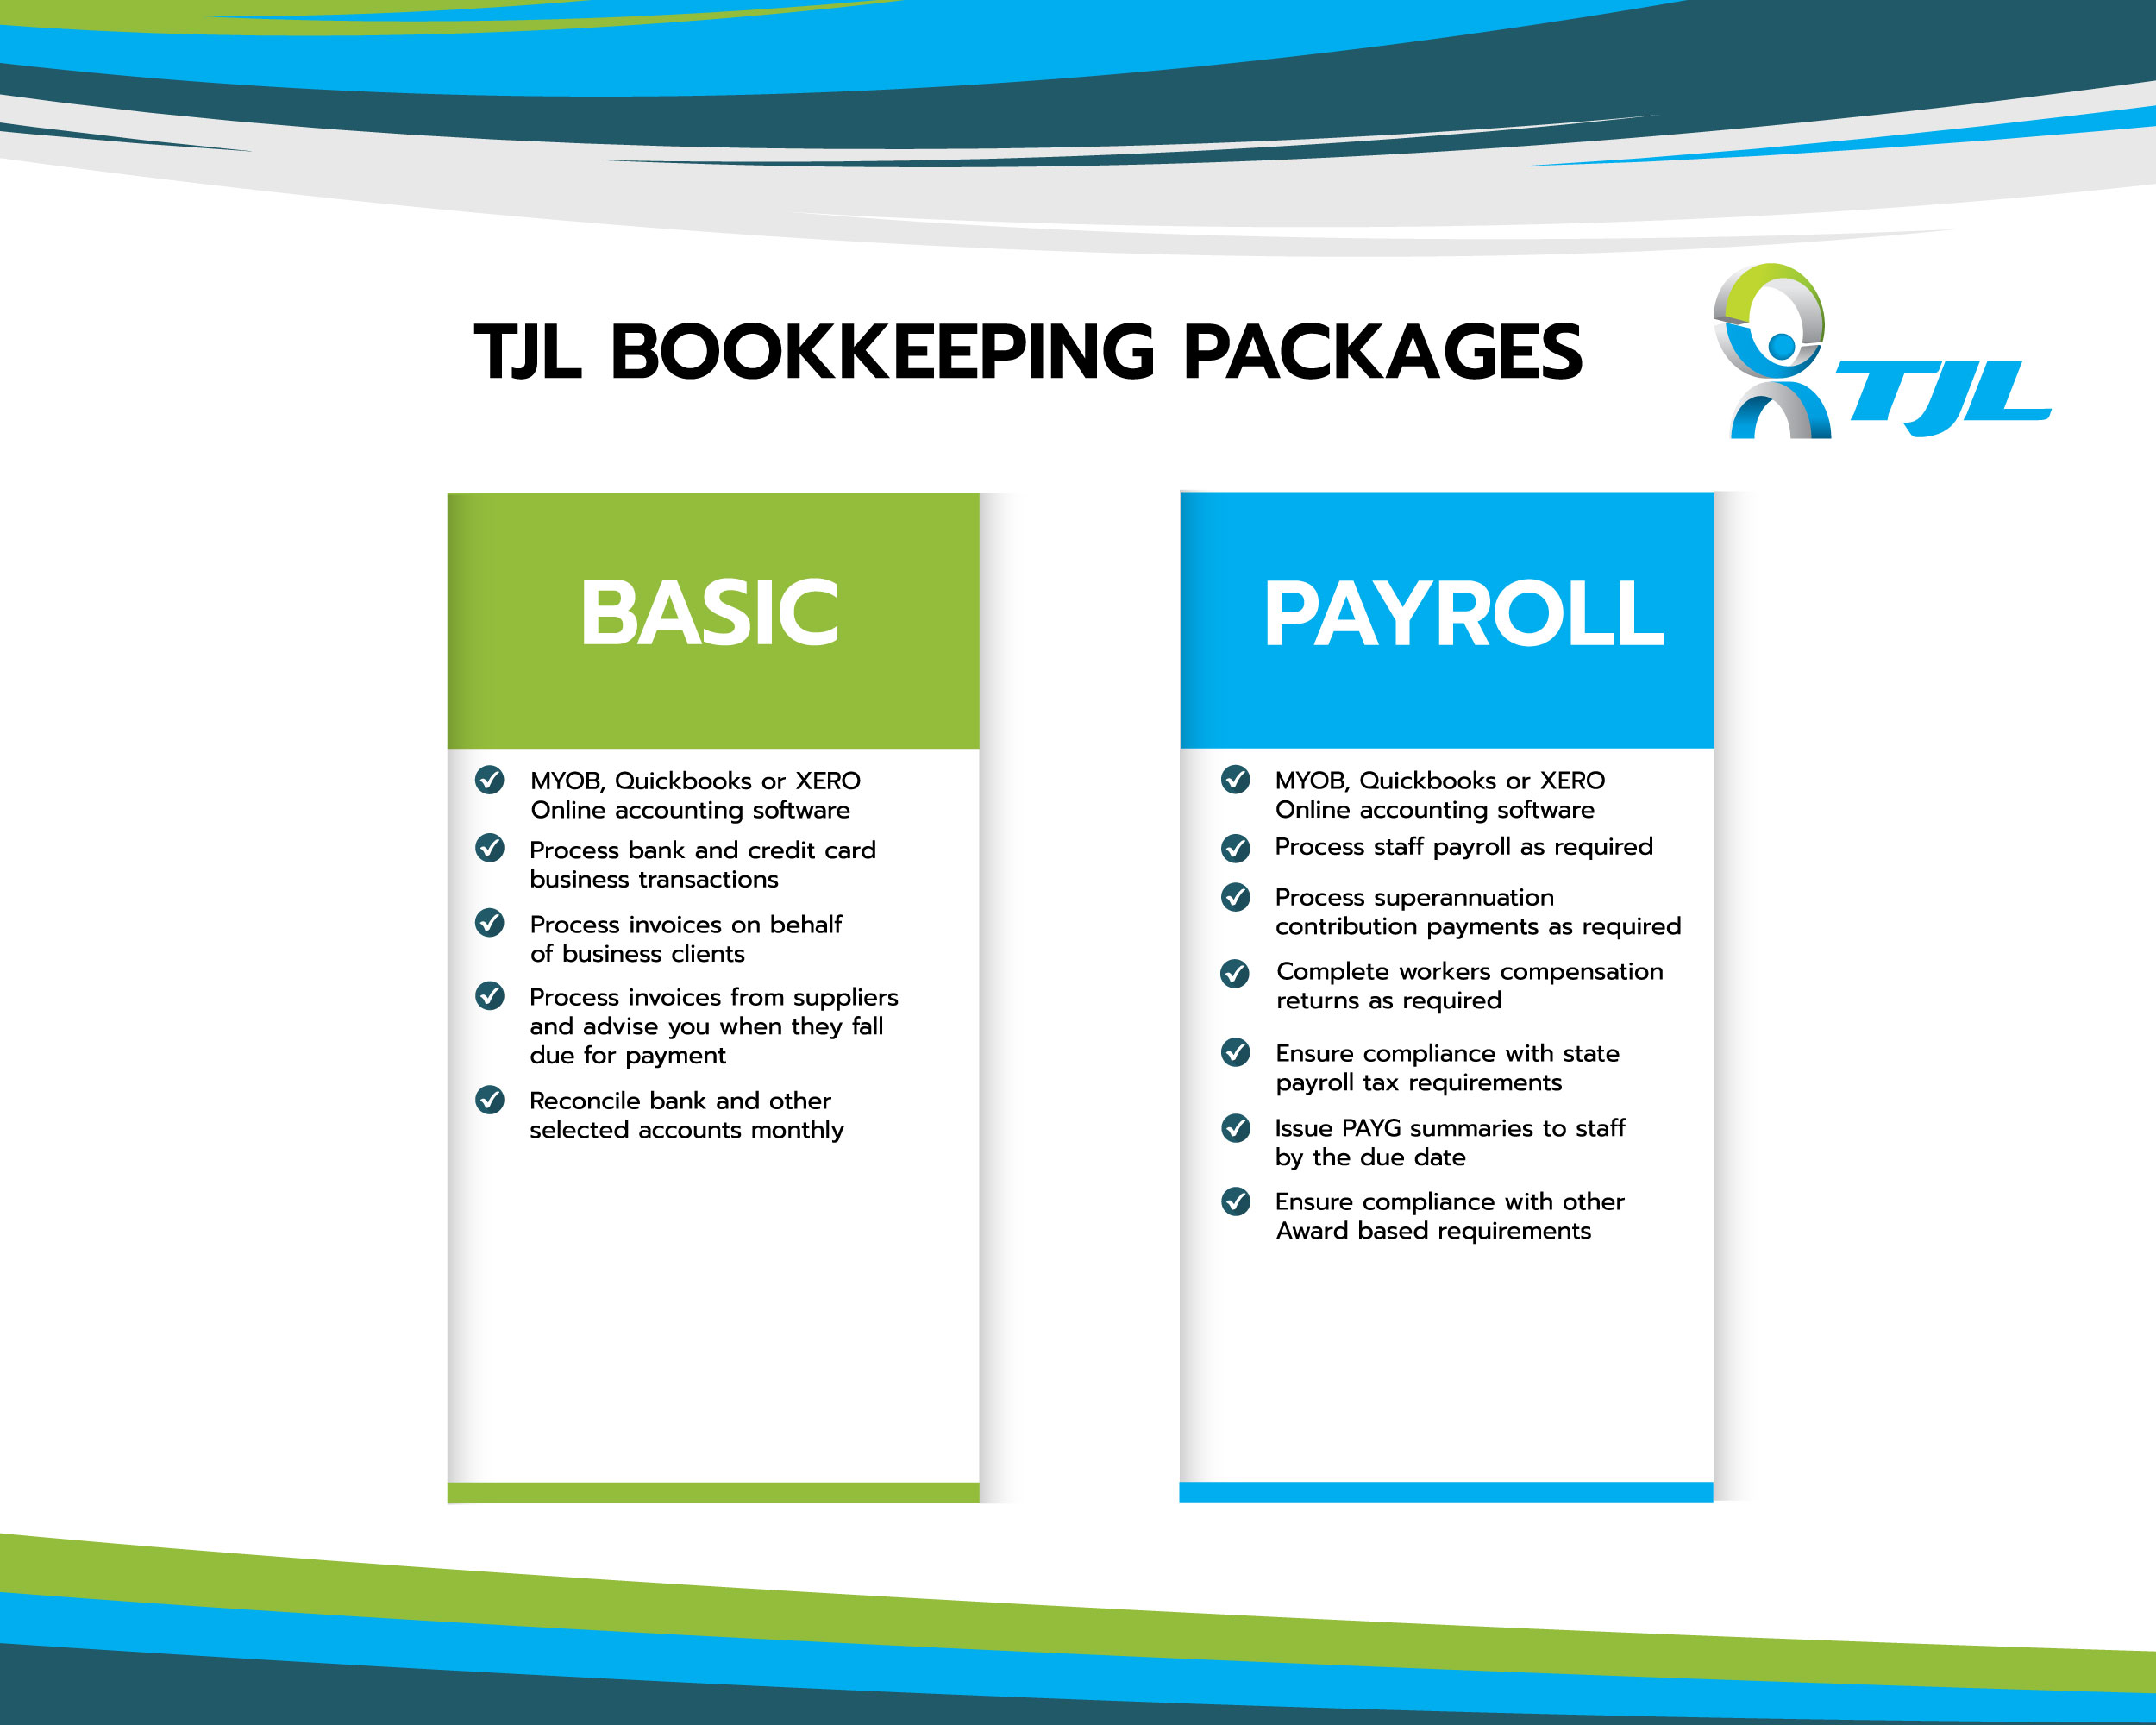 TJL - Bookkeeping Packages